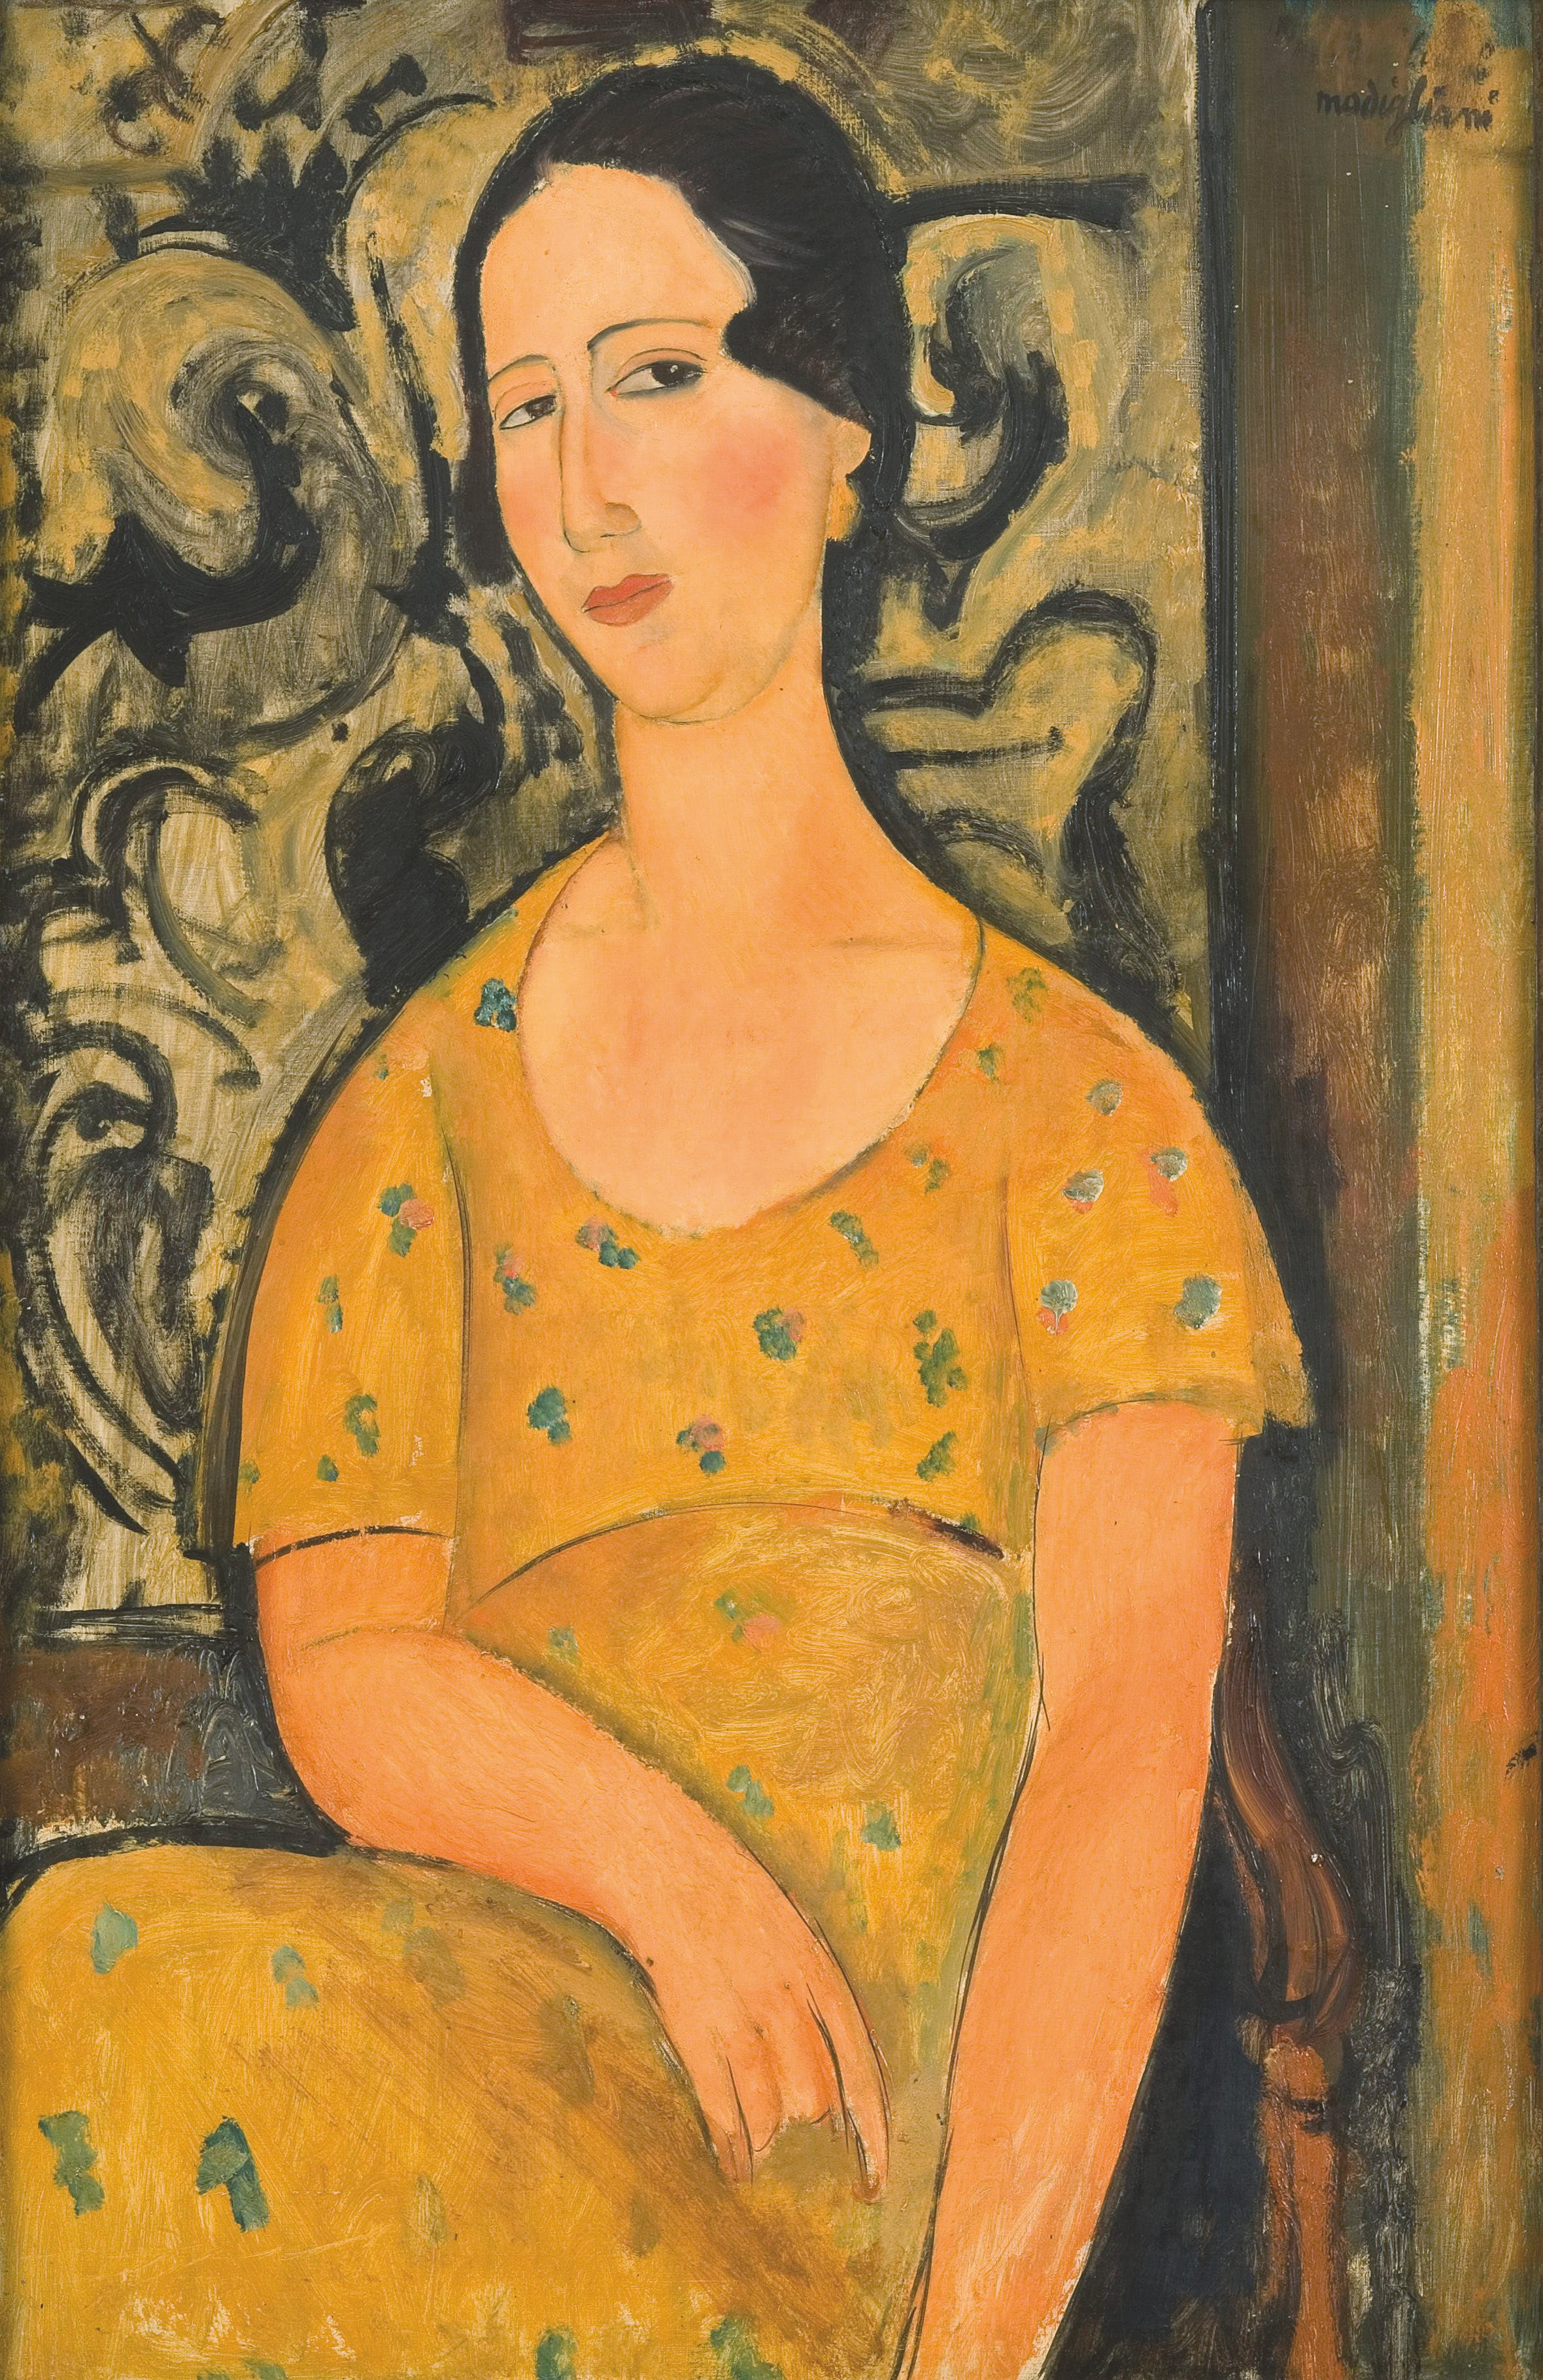 Woman in a Yellow Dress (La Belle Espagnole) (1918), Amadeo Modigliani